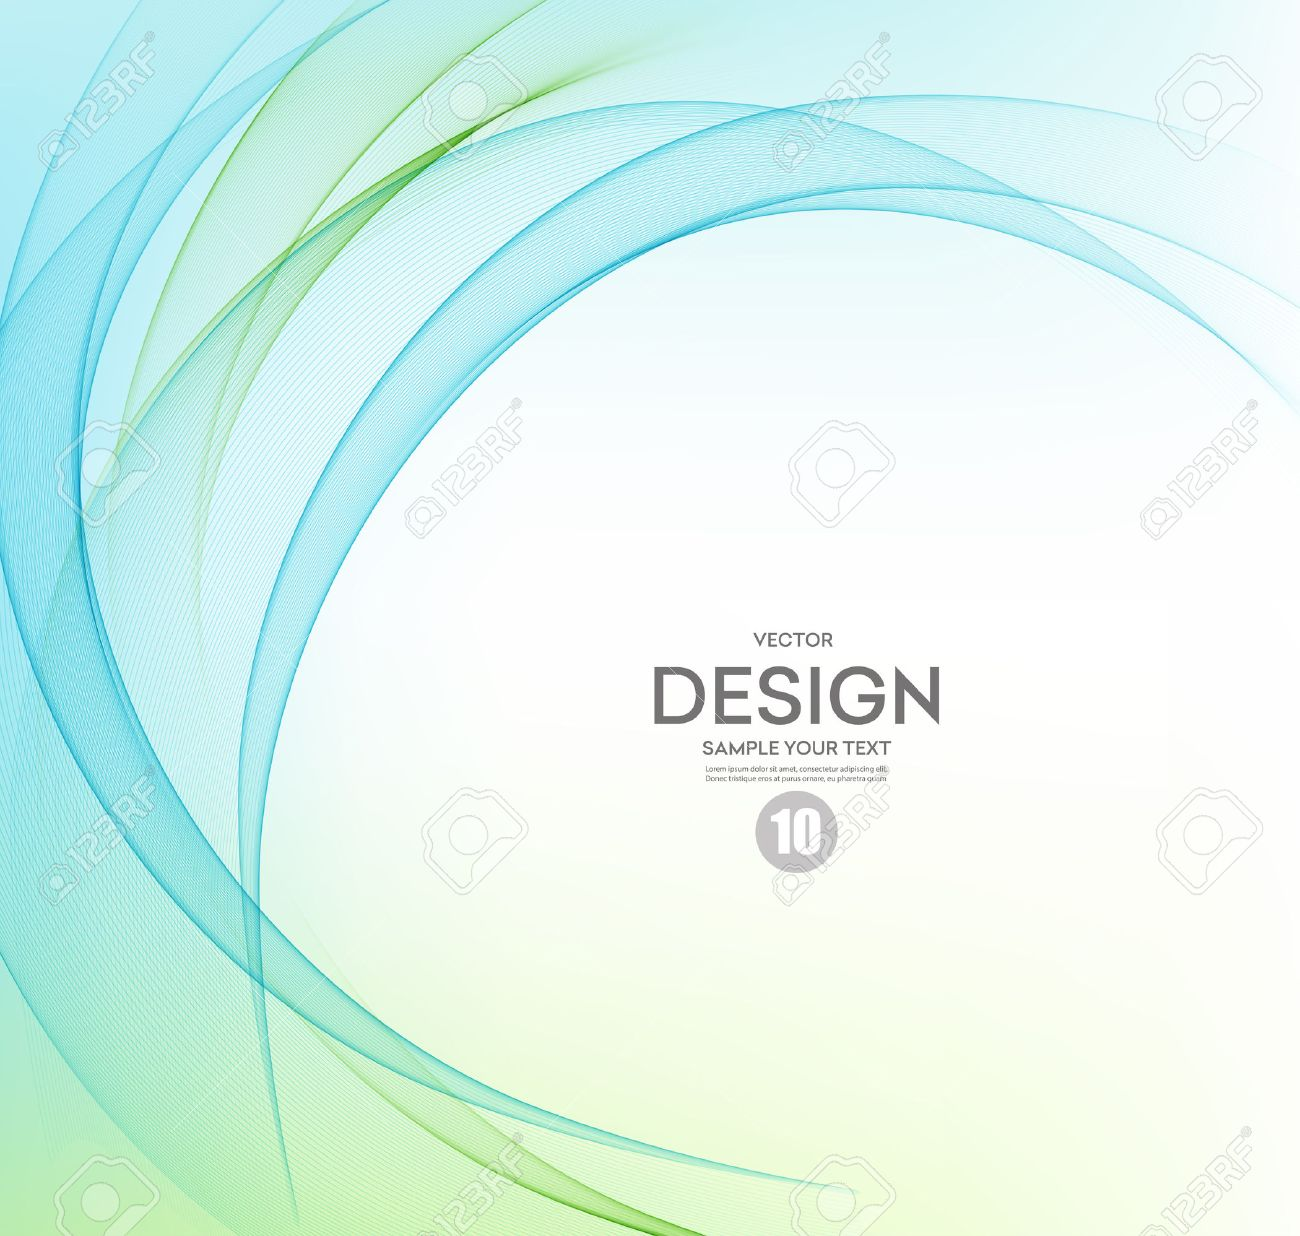 Abstract vector background, blue and green waved lines. - 53408483